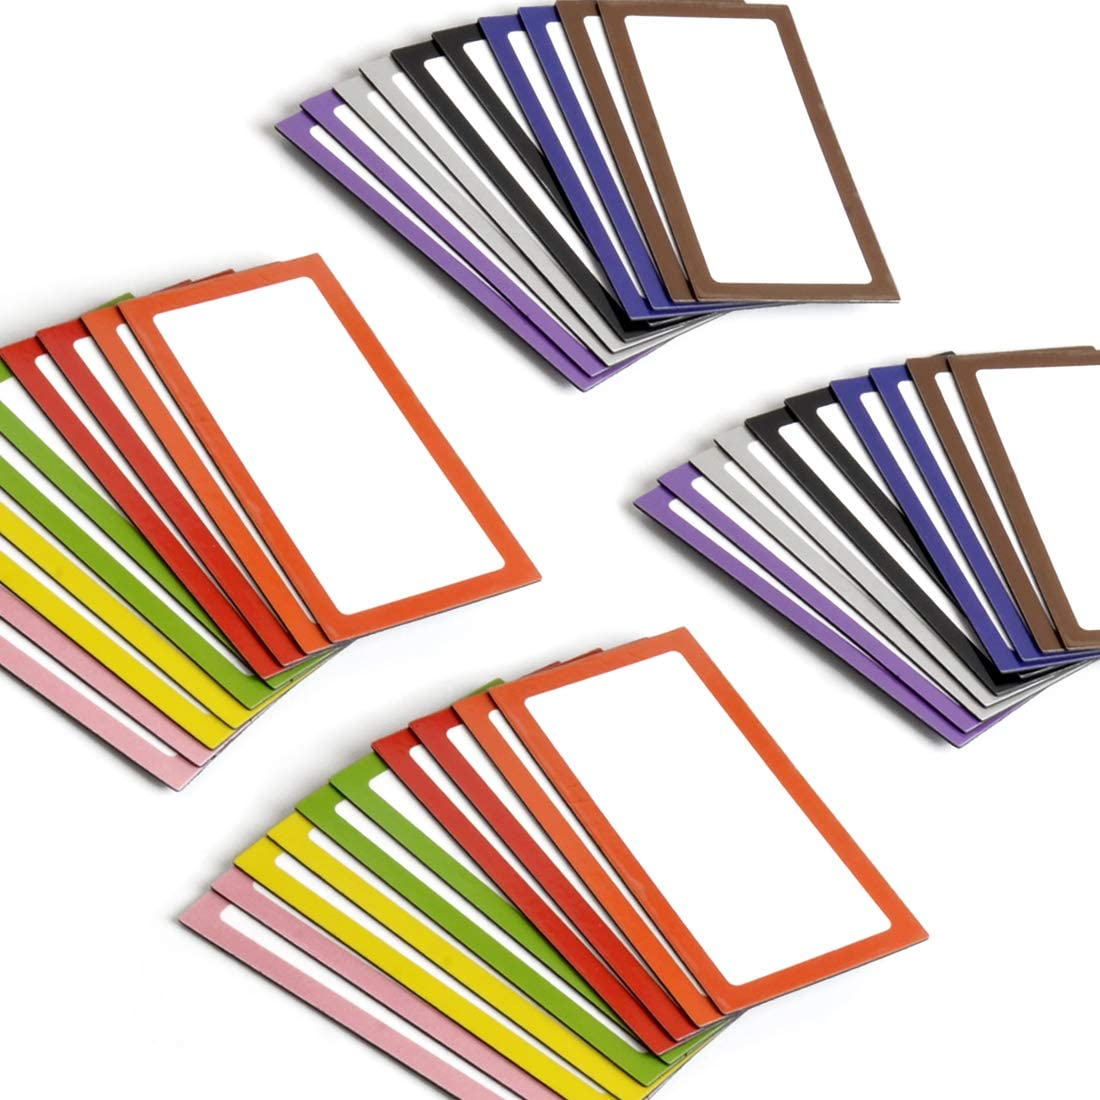 Magnetic Dry Erase Labels, 40 Pieces Magnetic Label Stickers, Refrigerator Whiteboards, 10 Colors, 4 x 2 Inches